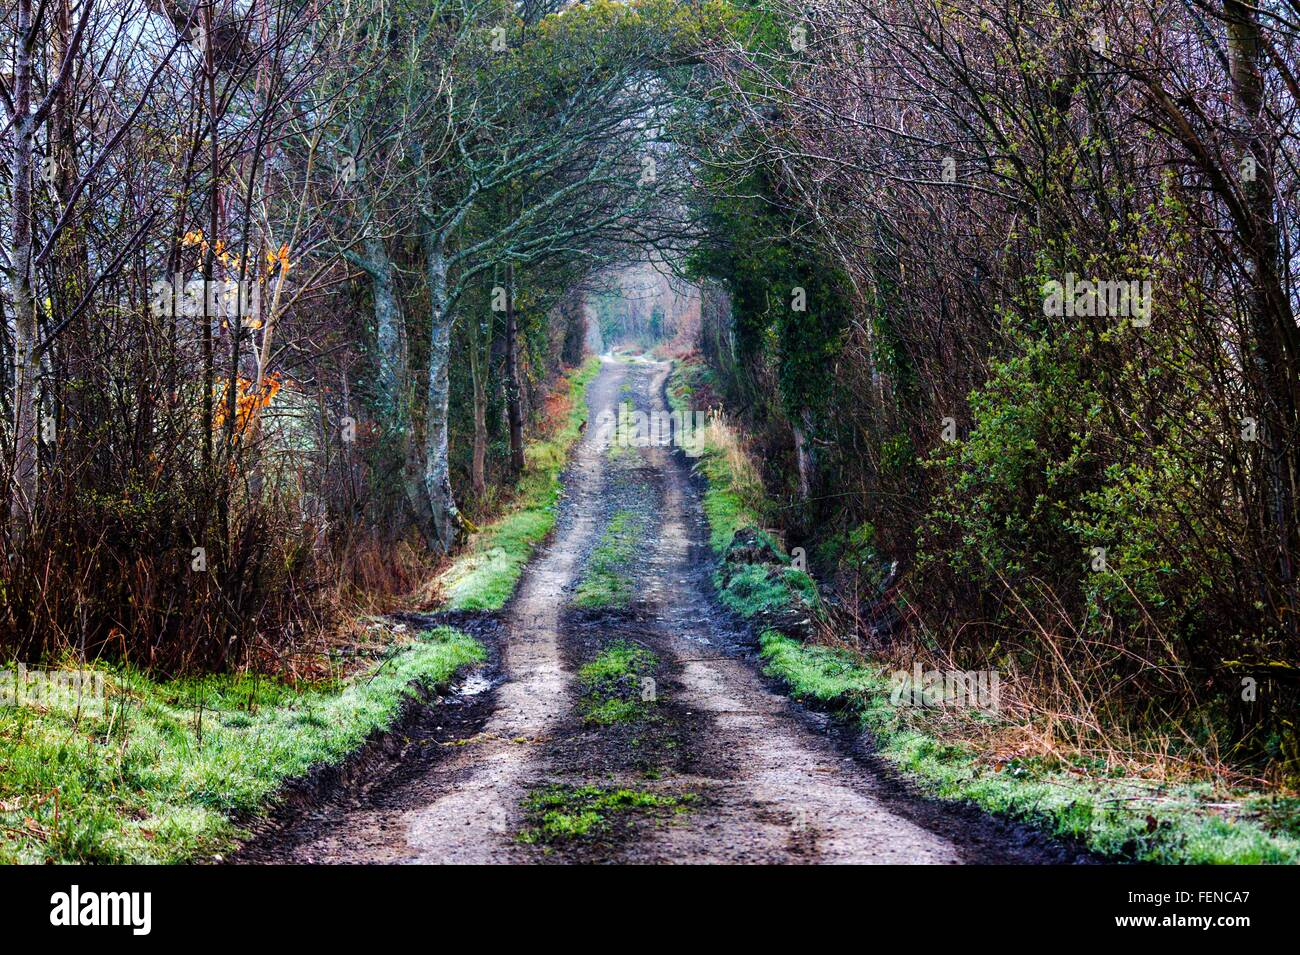 Bare Trees Along Dirt Road - Stock Image